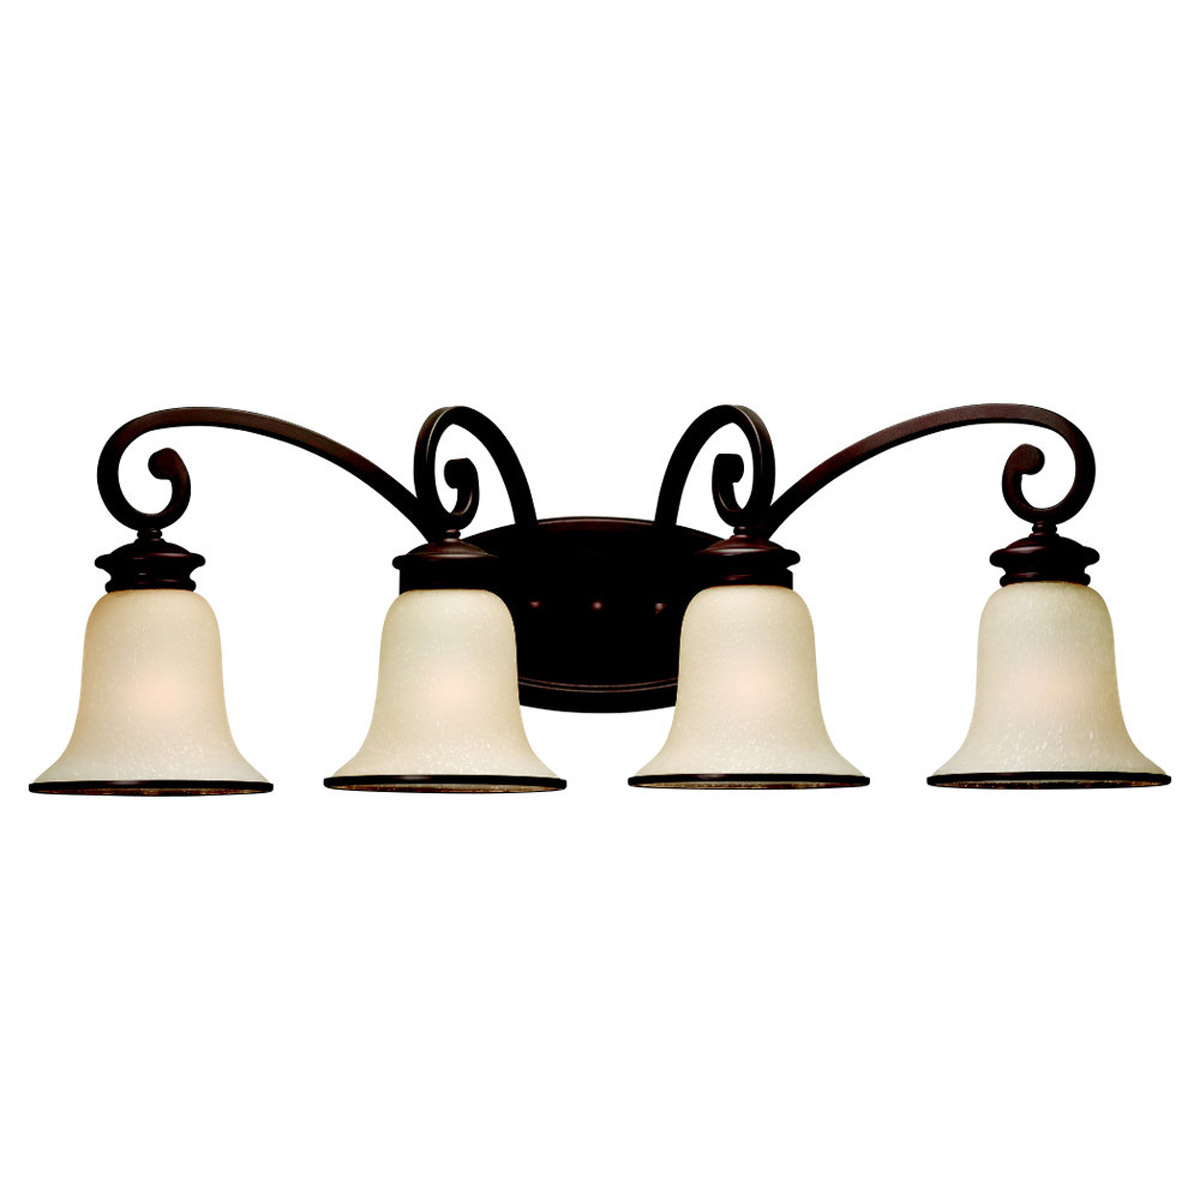 Sea Gull 44147-814 Acadia 4 Light 31 inch Misted Bronze Bath Vanity Wall Light in Standard photo